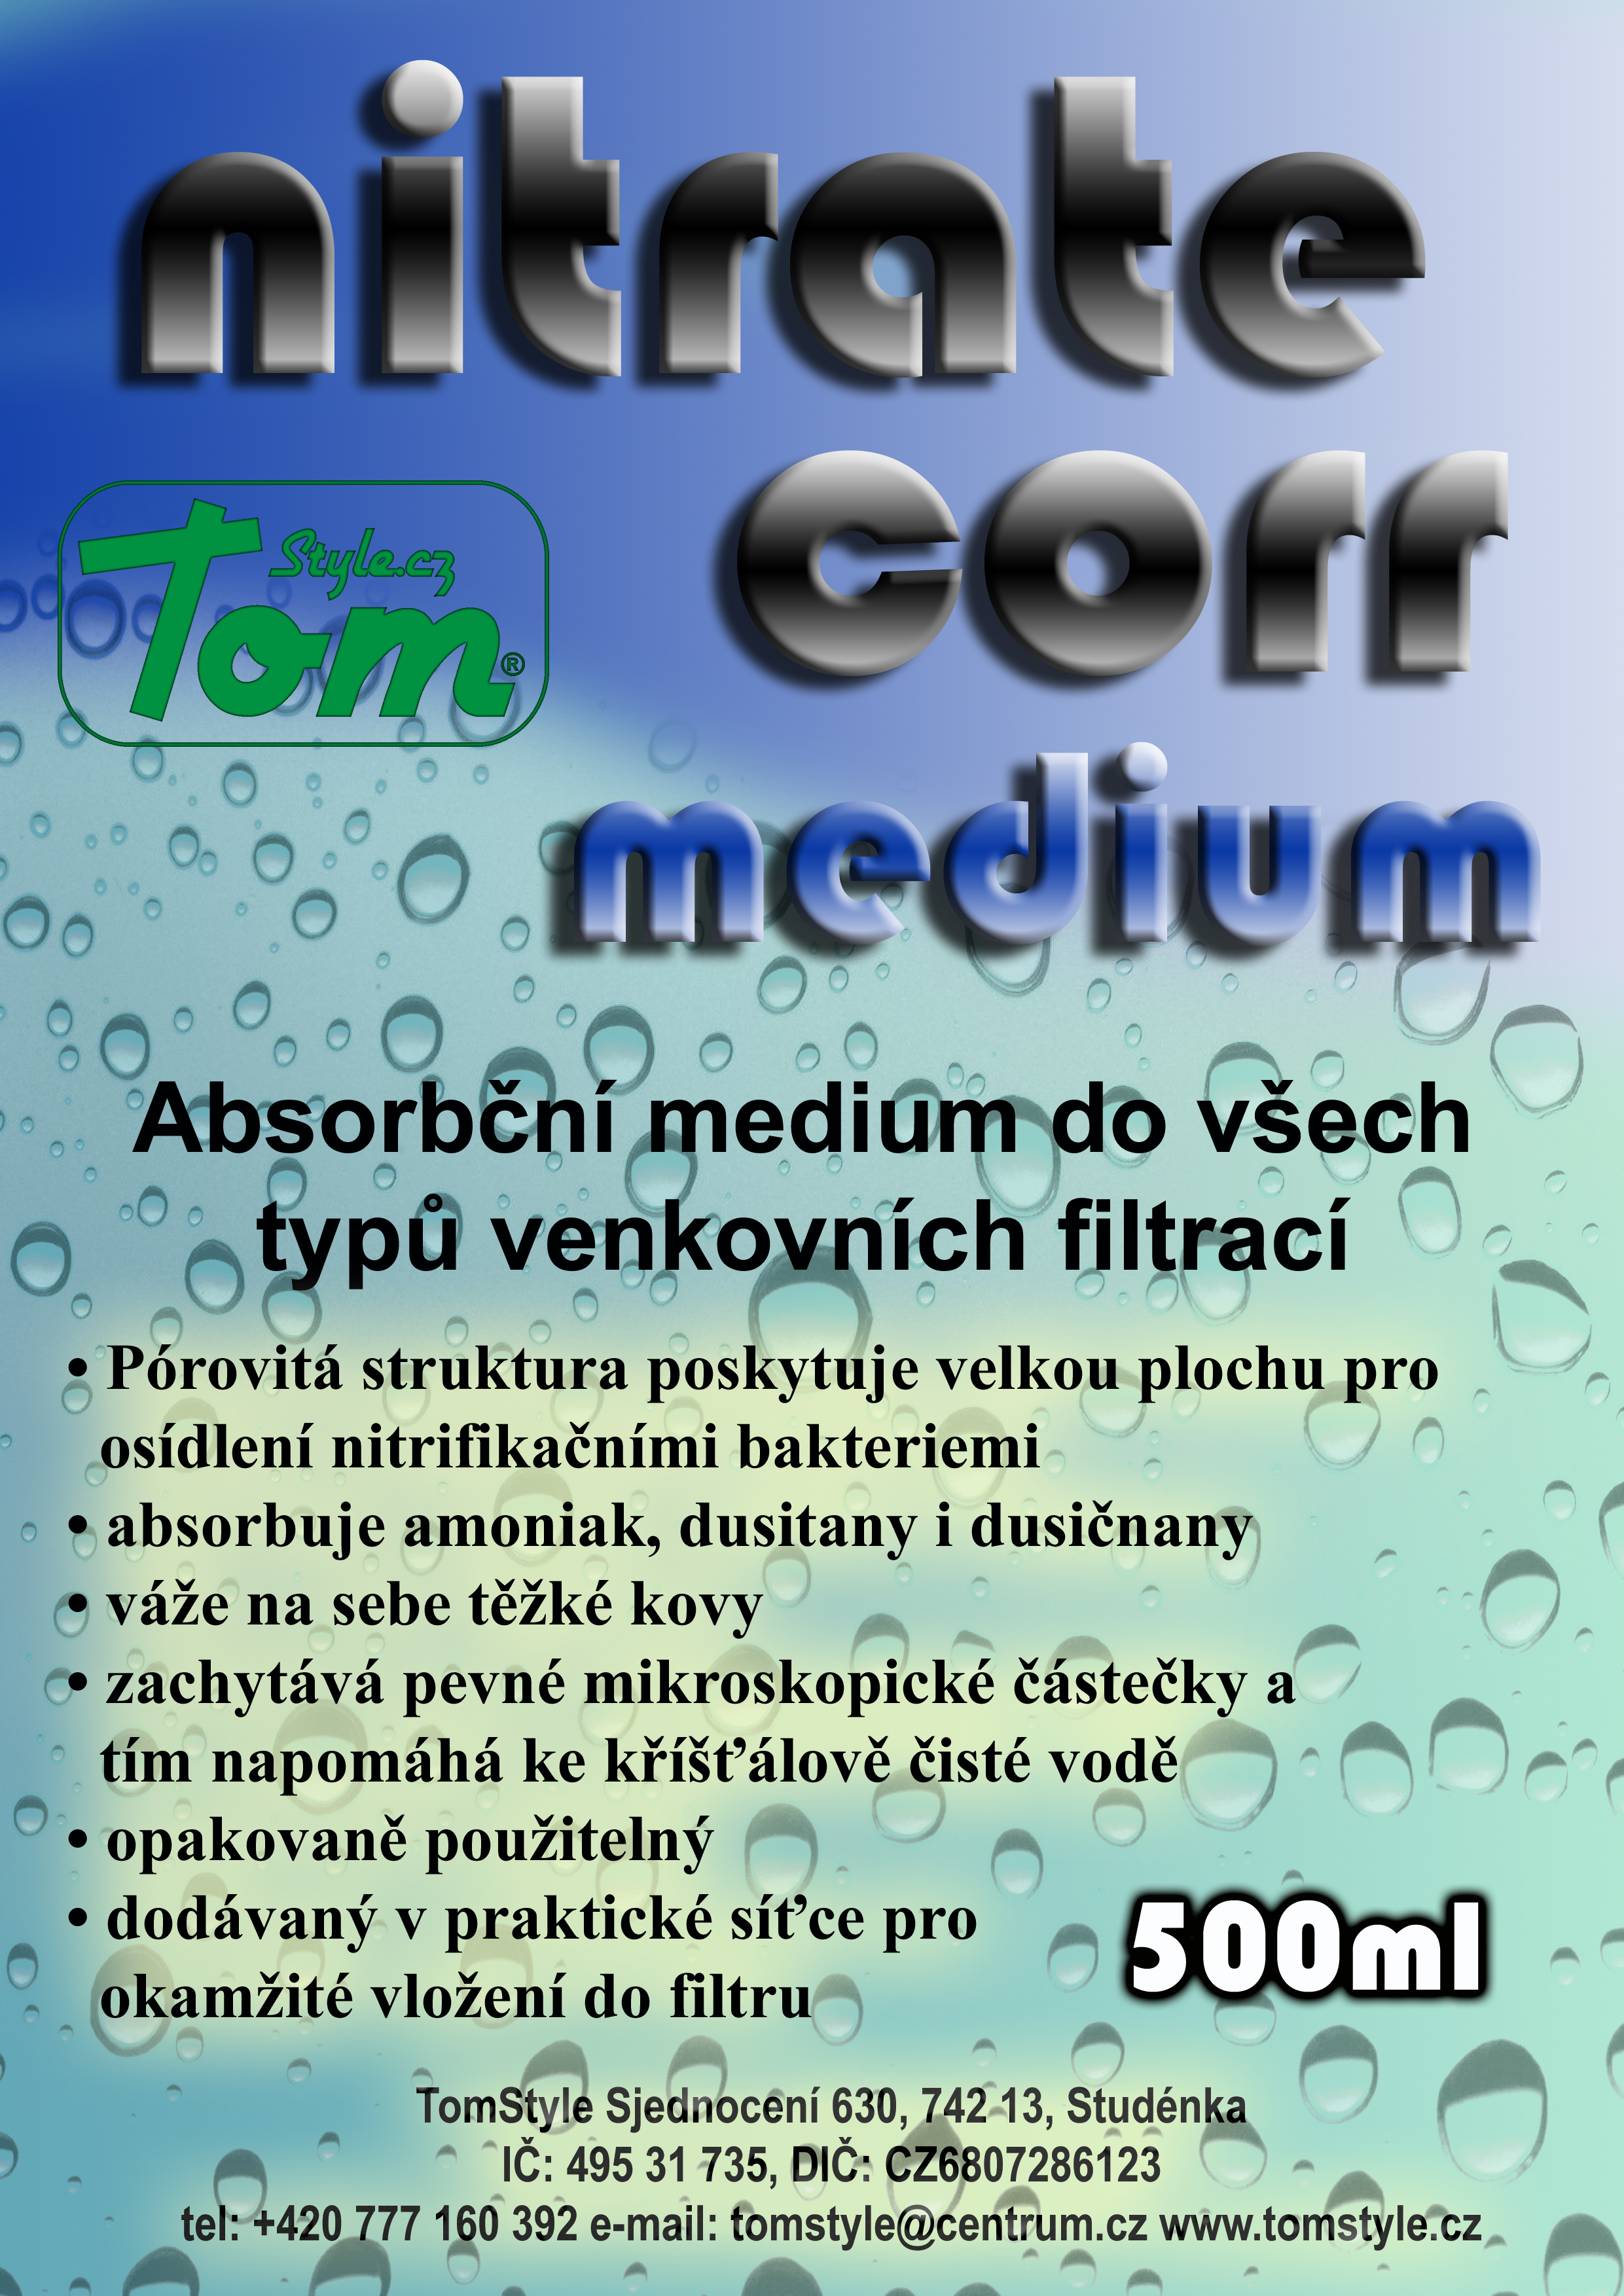 Tomstyle.cz nitrate corr medium 500ml